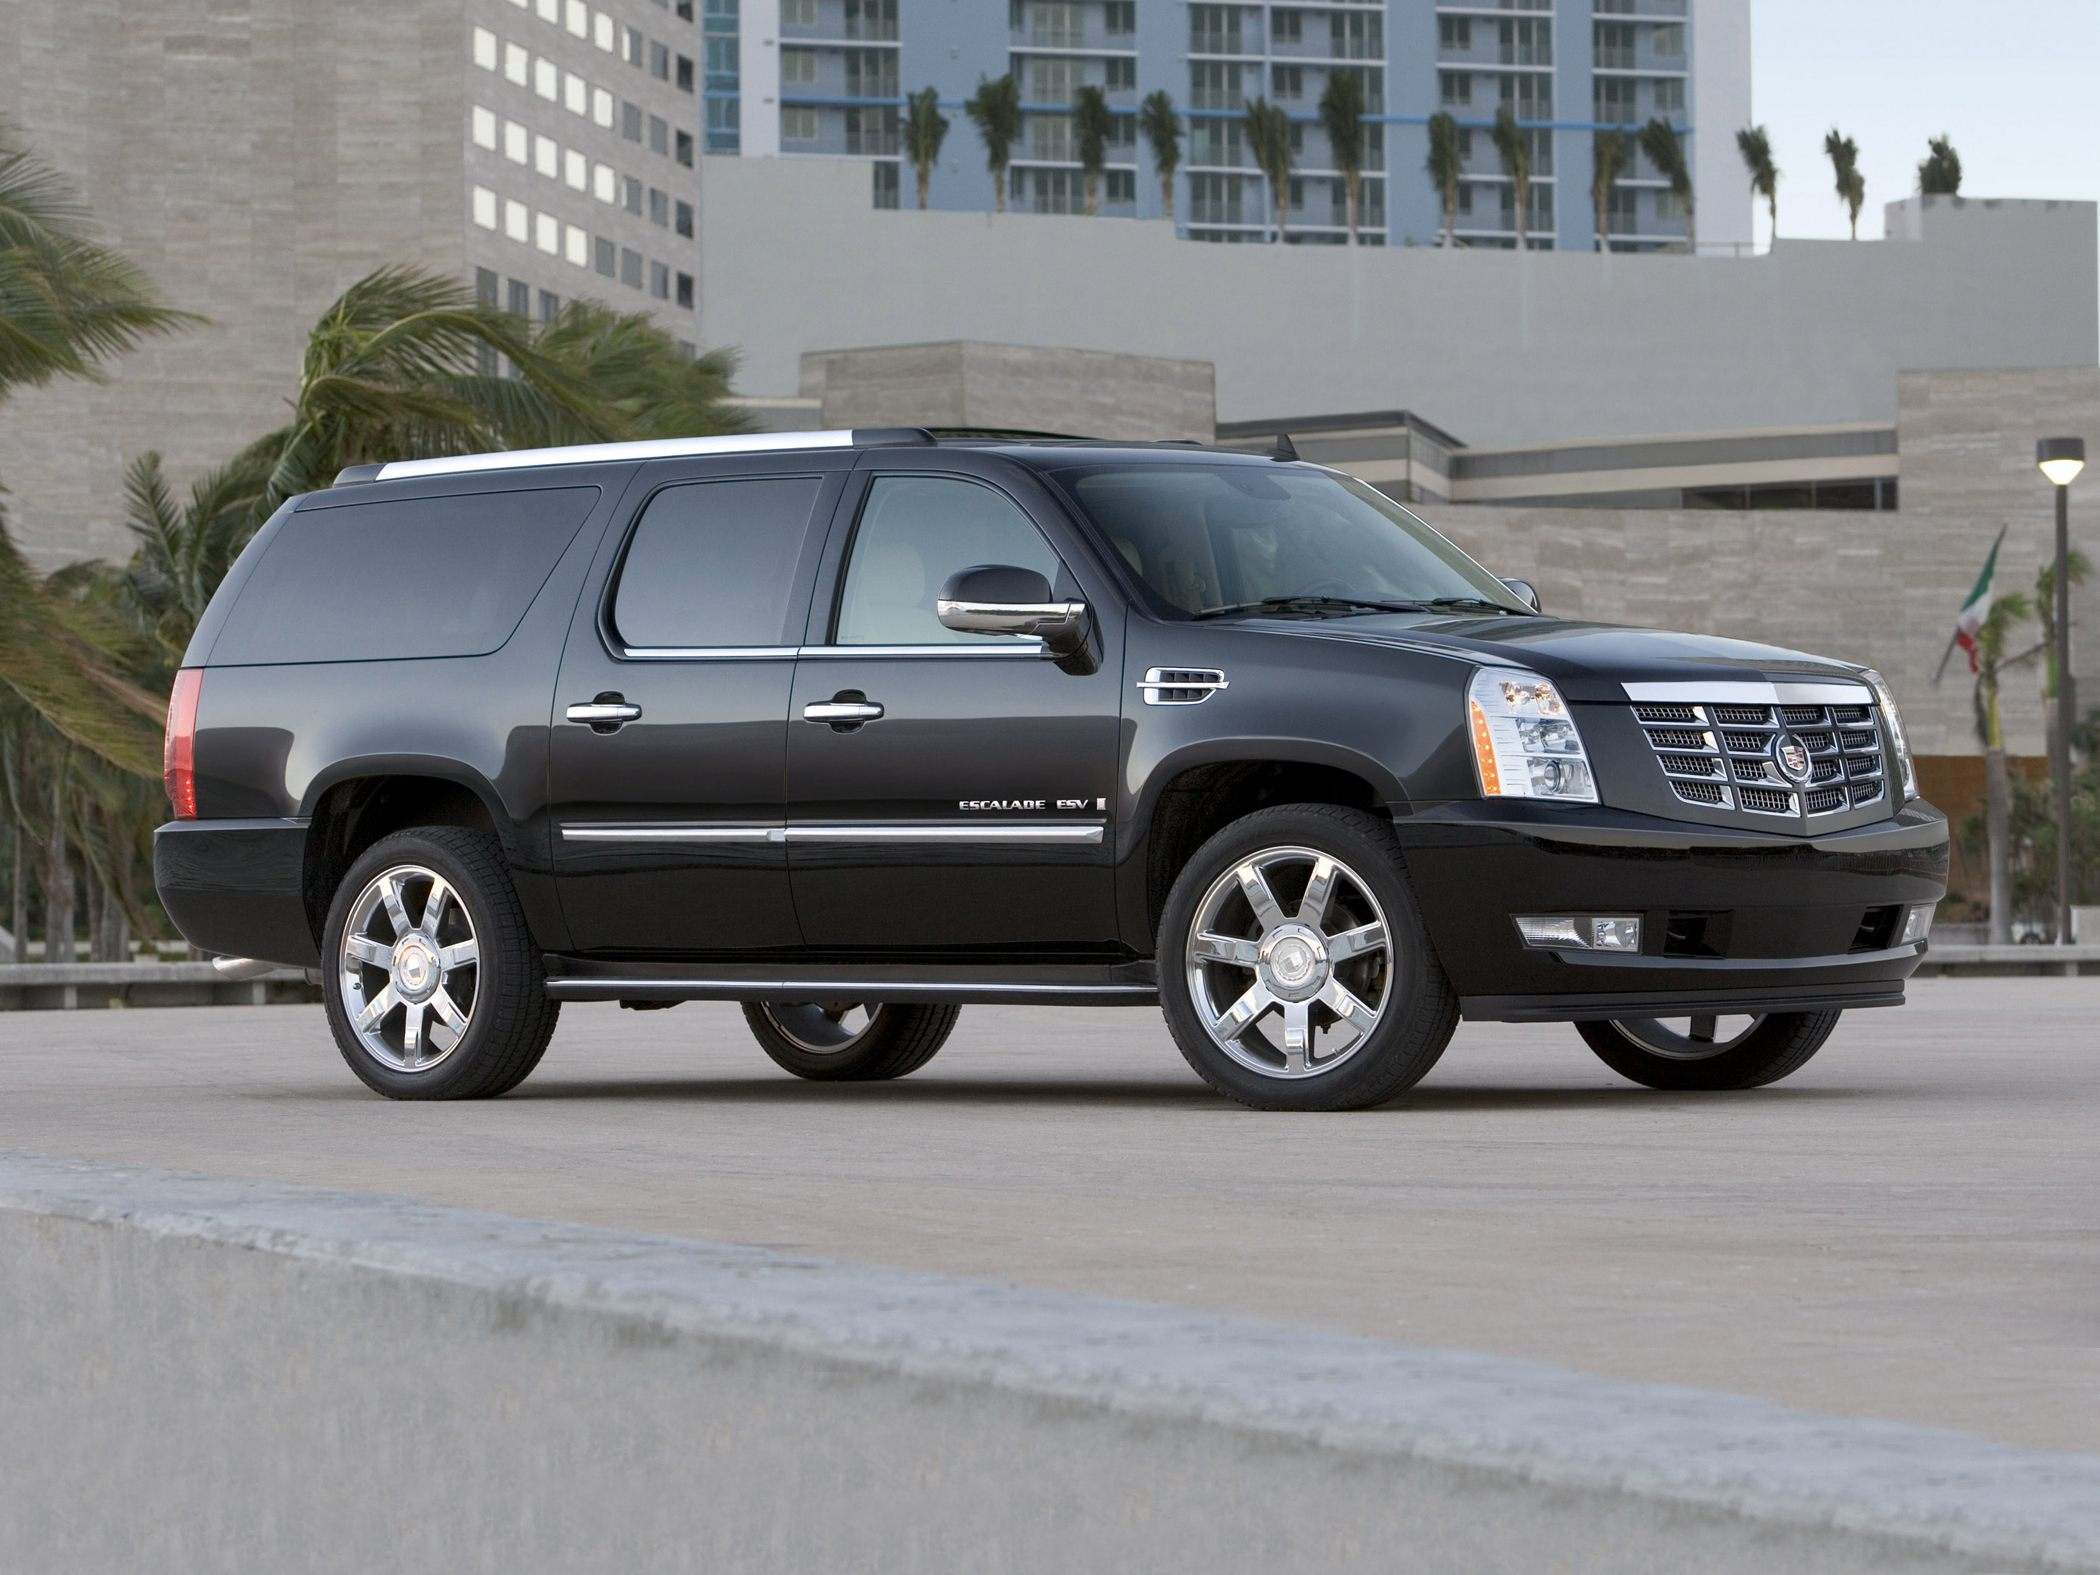 2012 cadillac escalade esv image 5. Black Bedroom Furniture Sets. Home Design Ideas